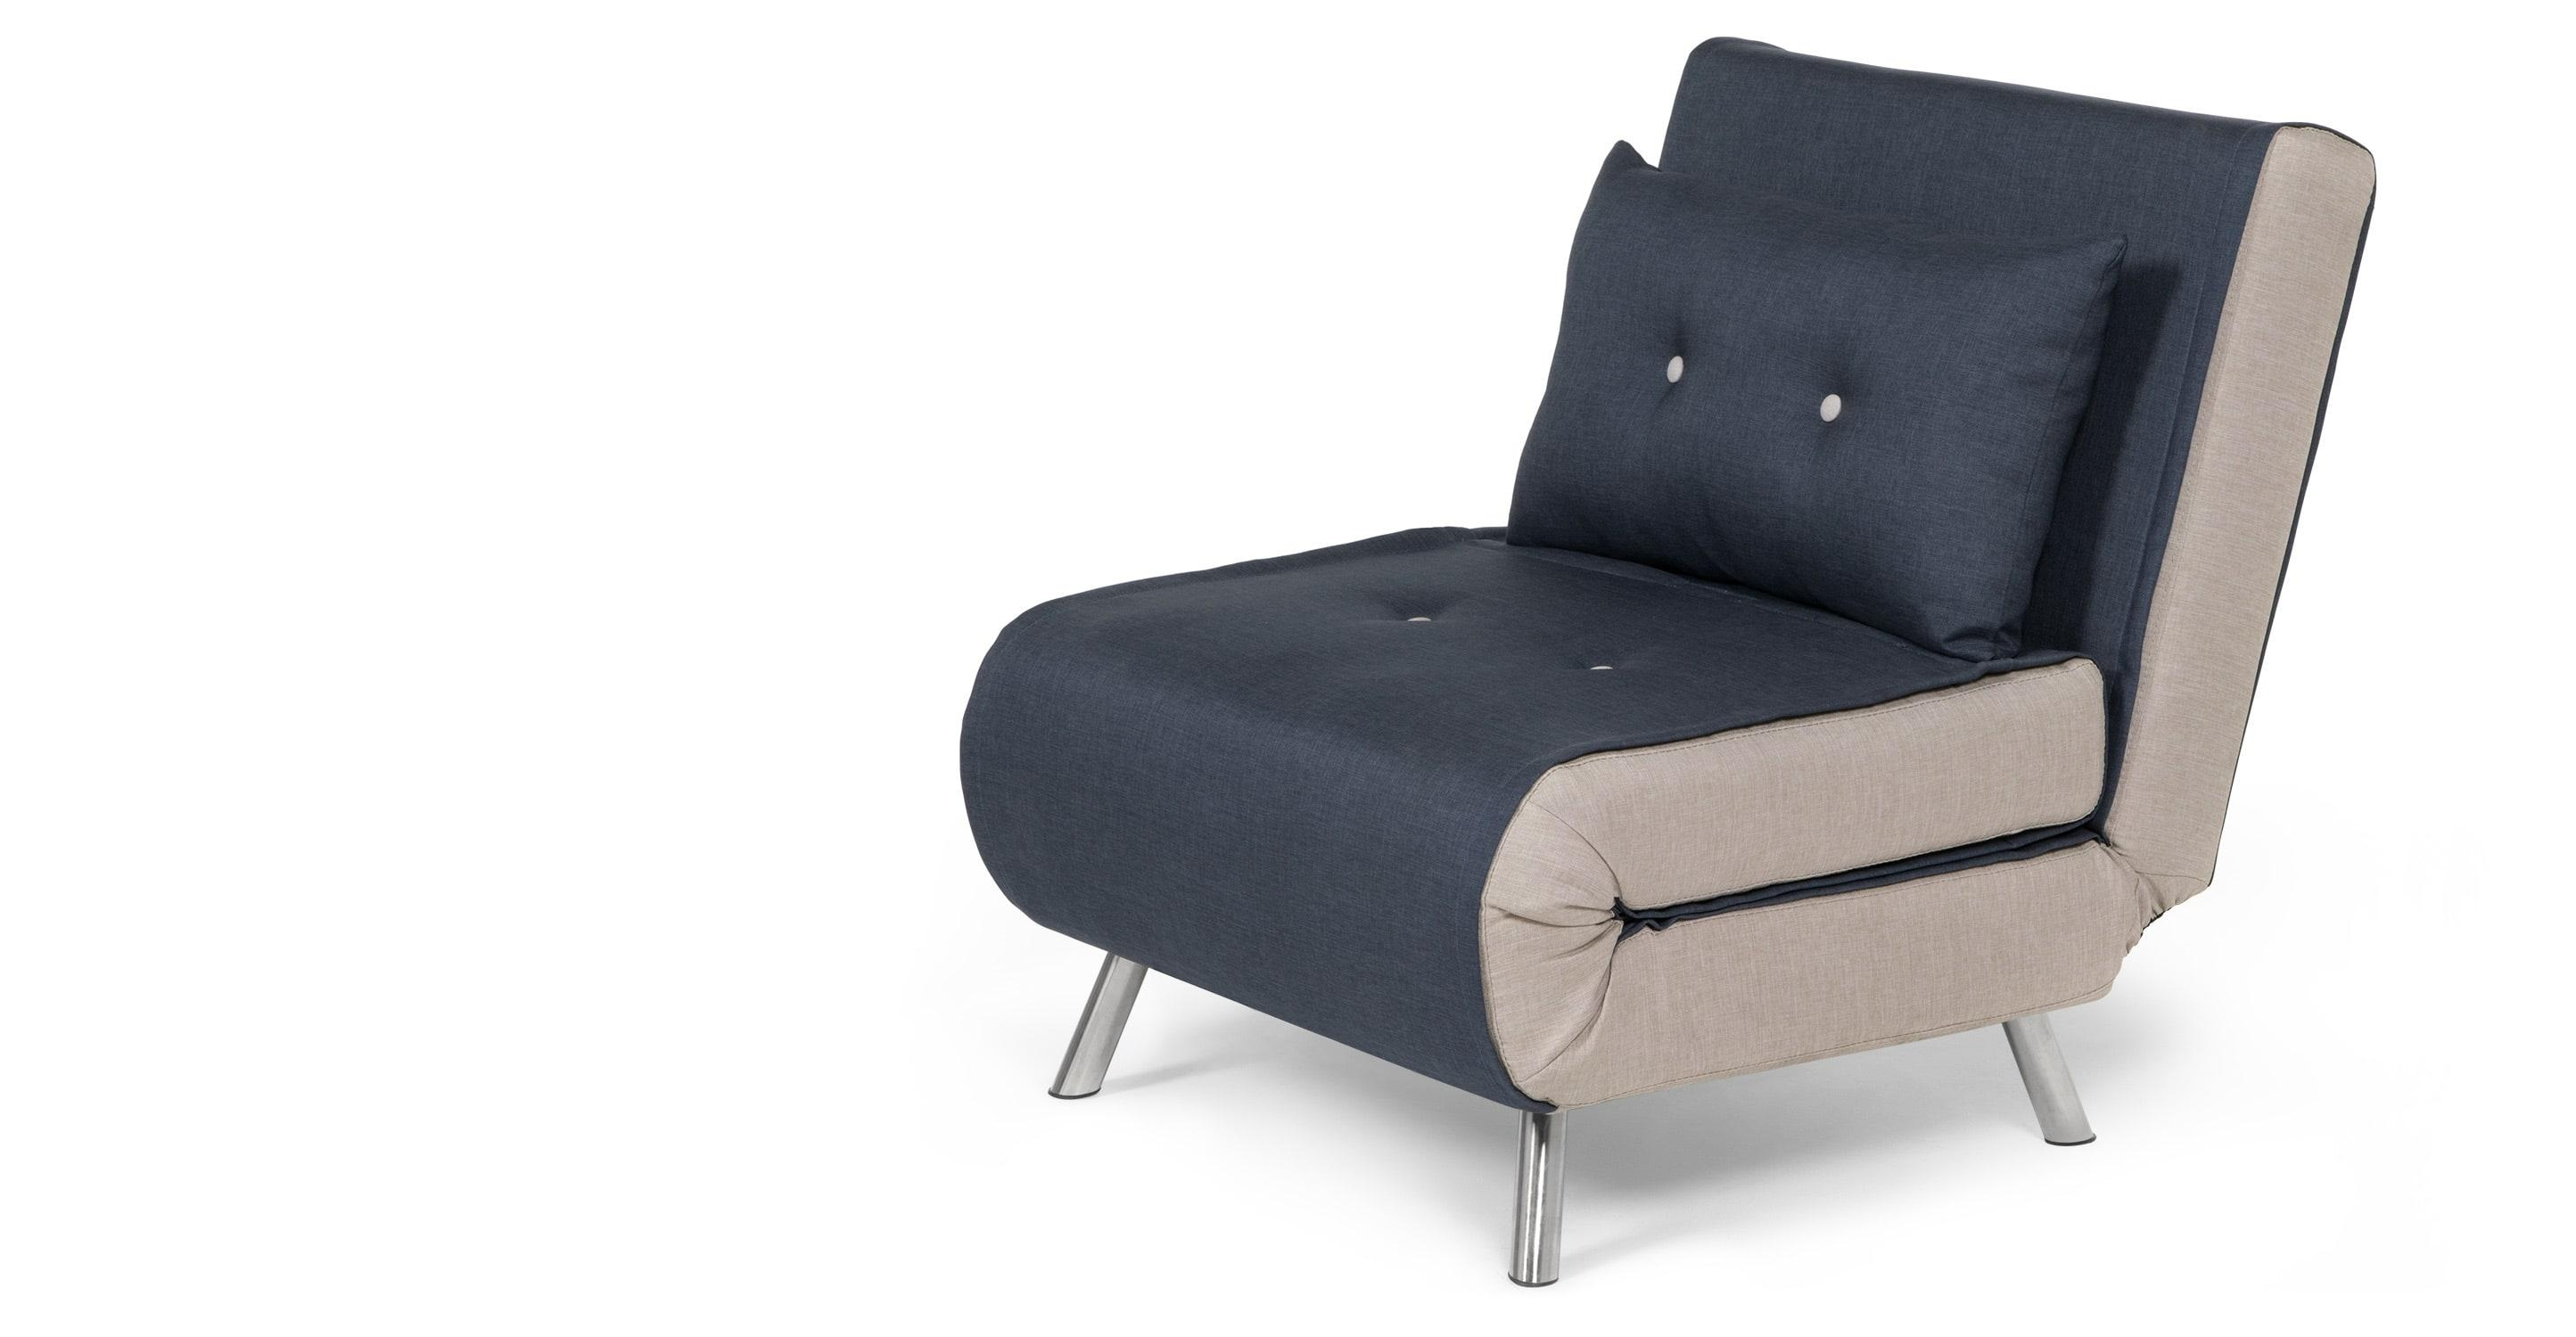 Haru Single Sofa Bed, Quartz Blue | Made Intended For Single Seat Sofa Chairs (View 14 of 20)